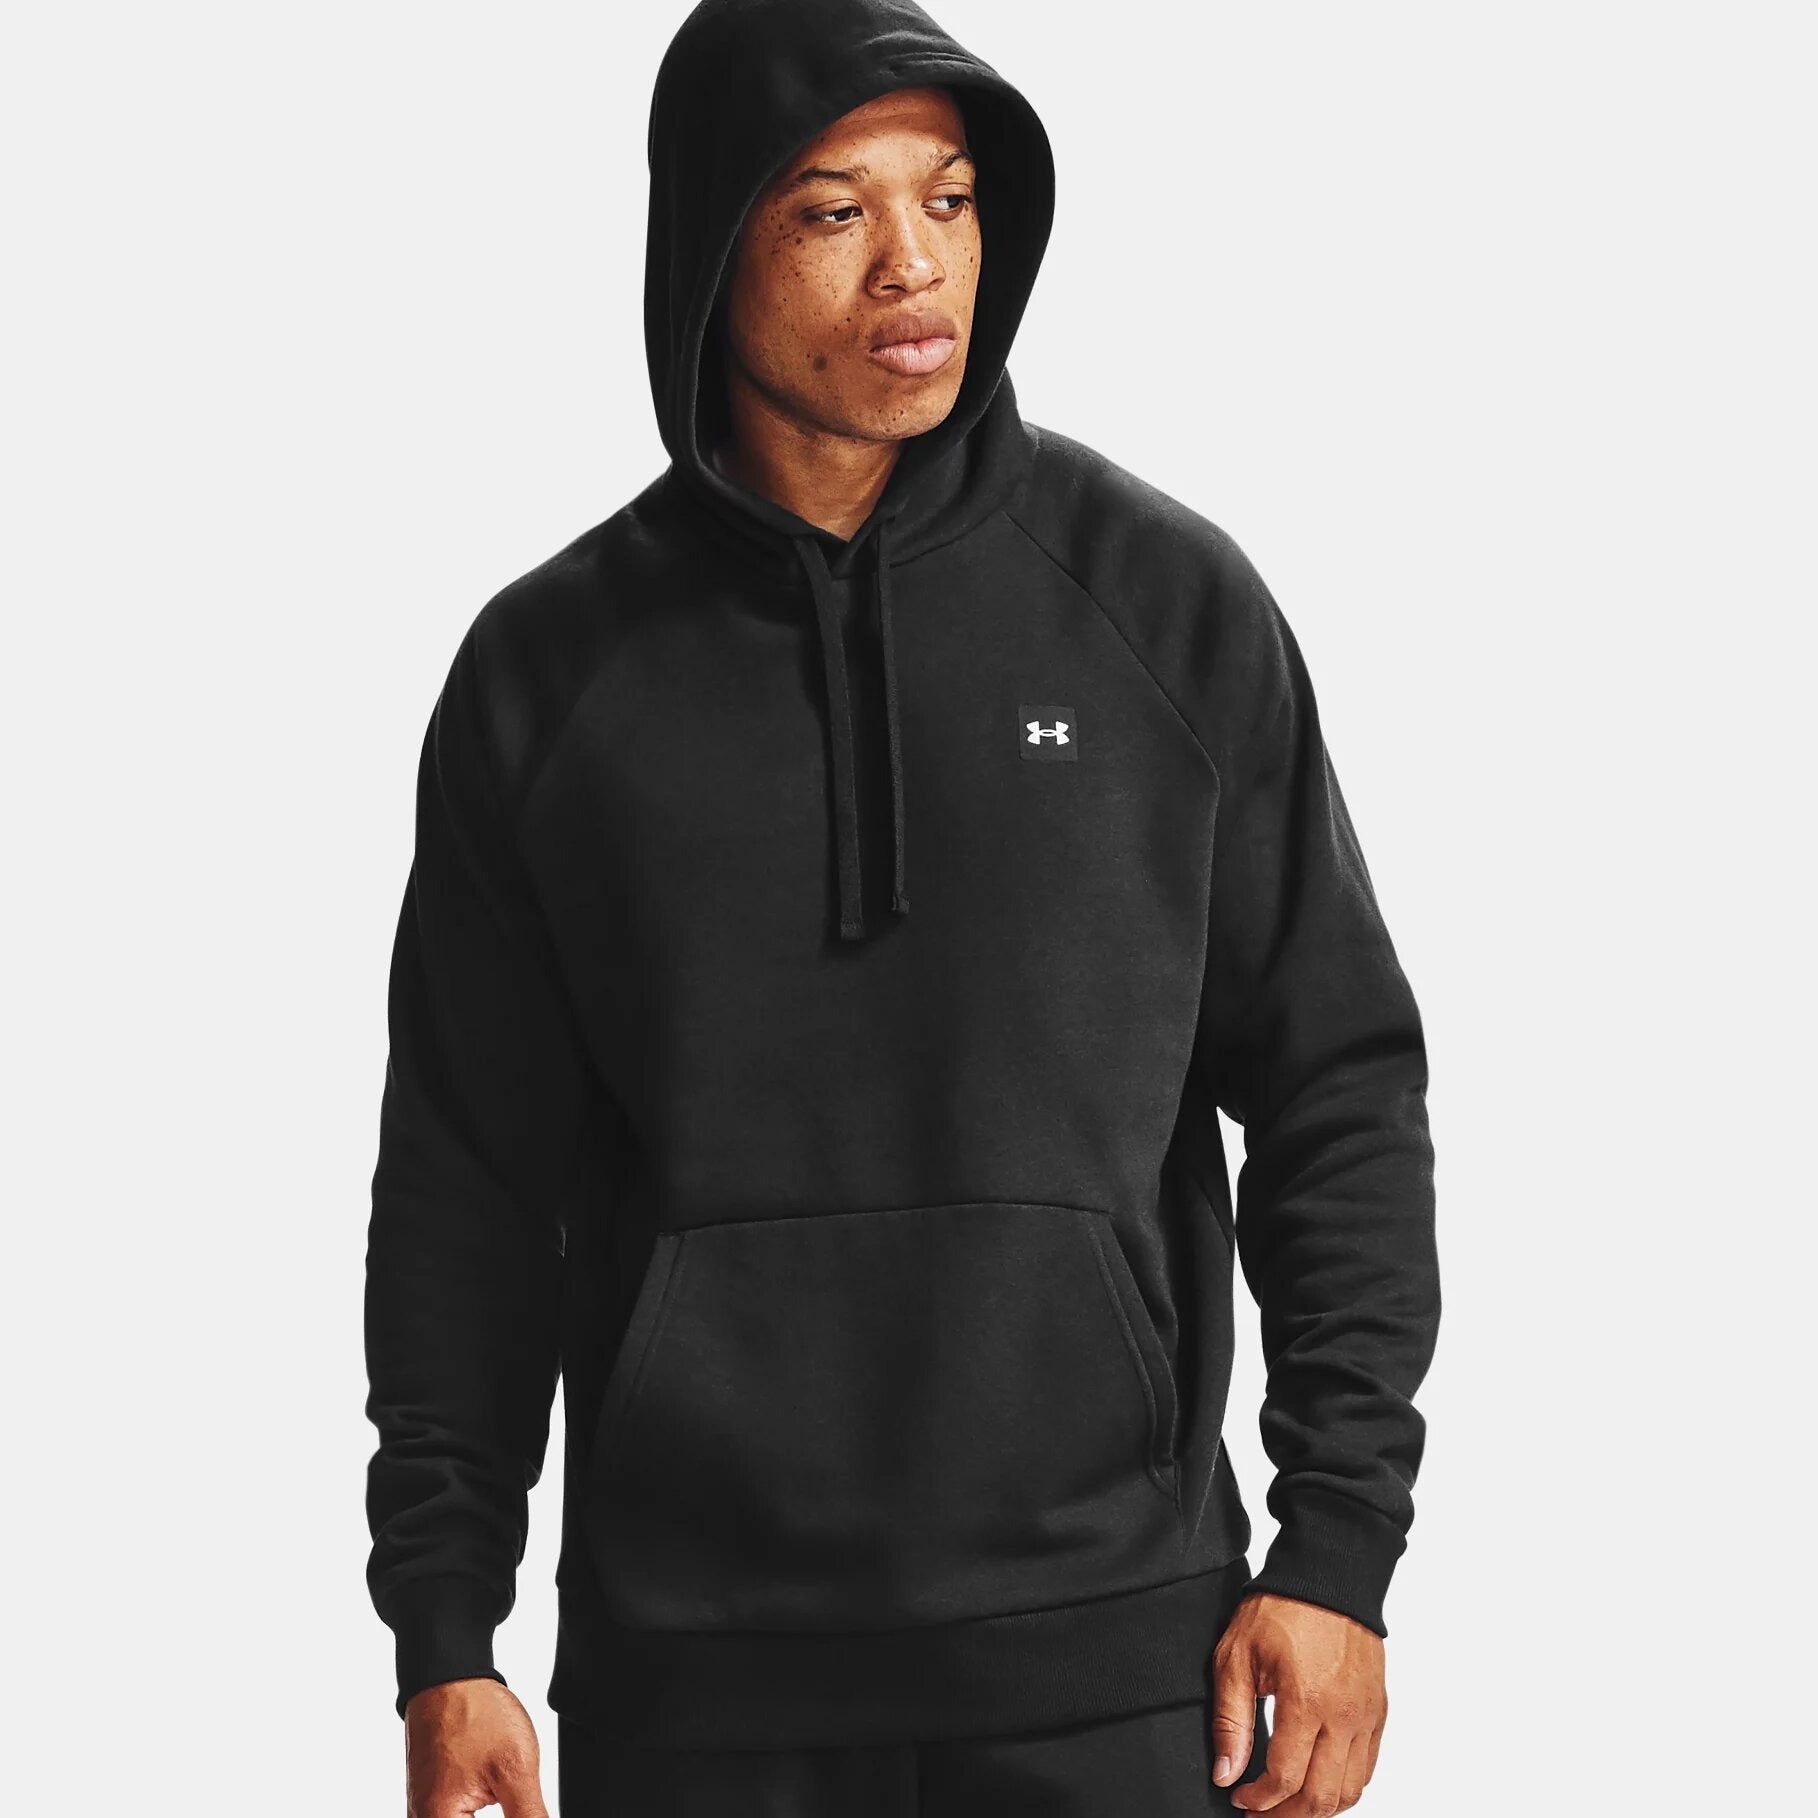 Under Armour Men's UA Rival Fleece Hoodie - Black/Onyx White